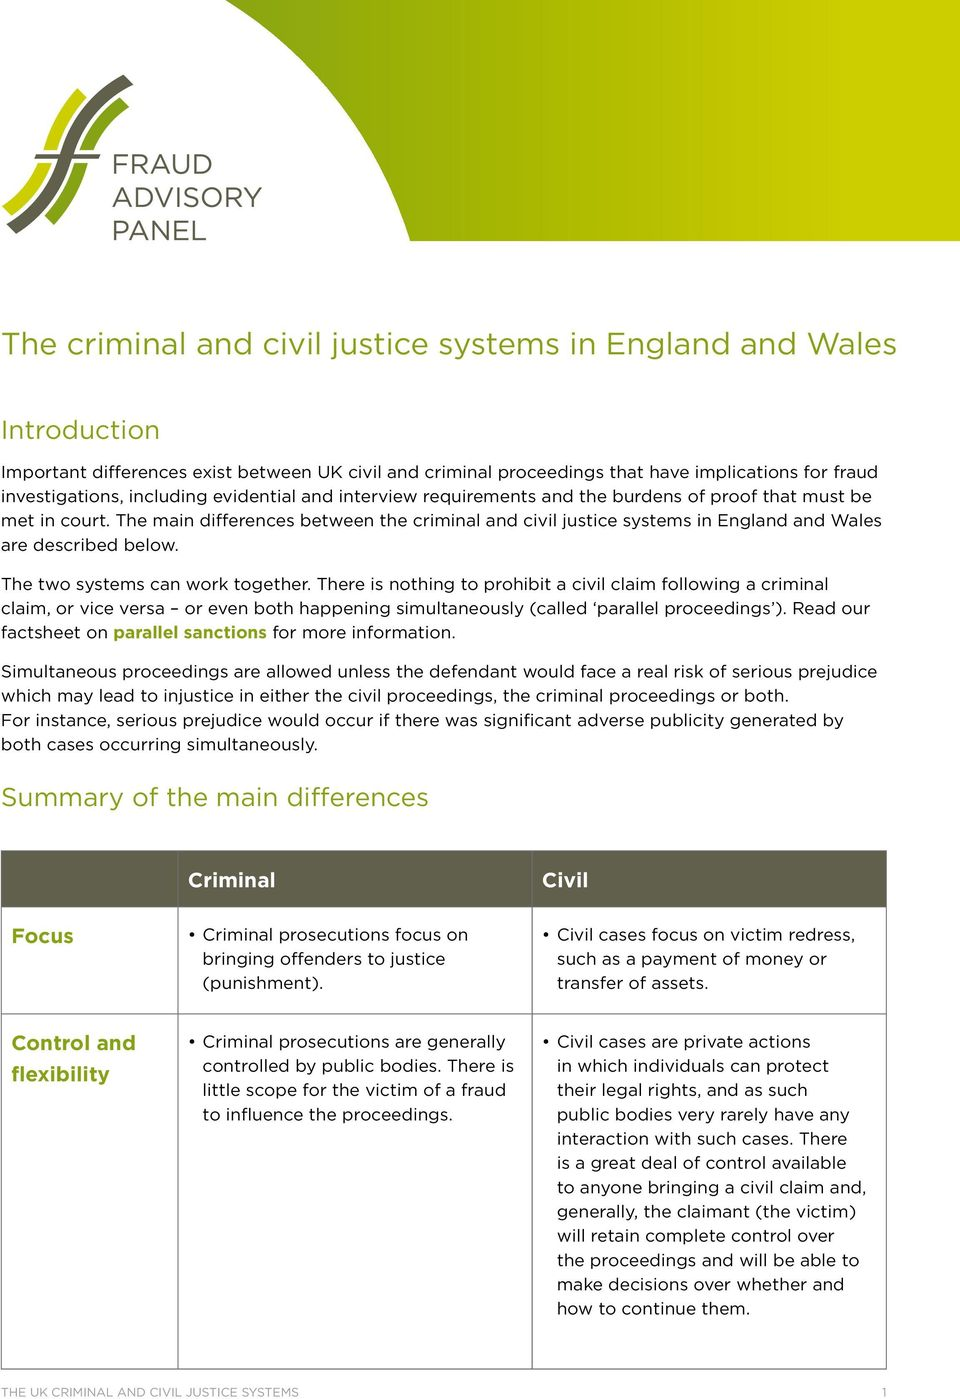 The main differences between the criminal and civil justice systems in England and Wales are described below. The two systems can work together.